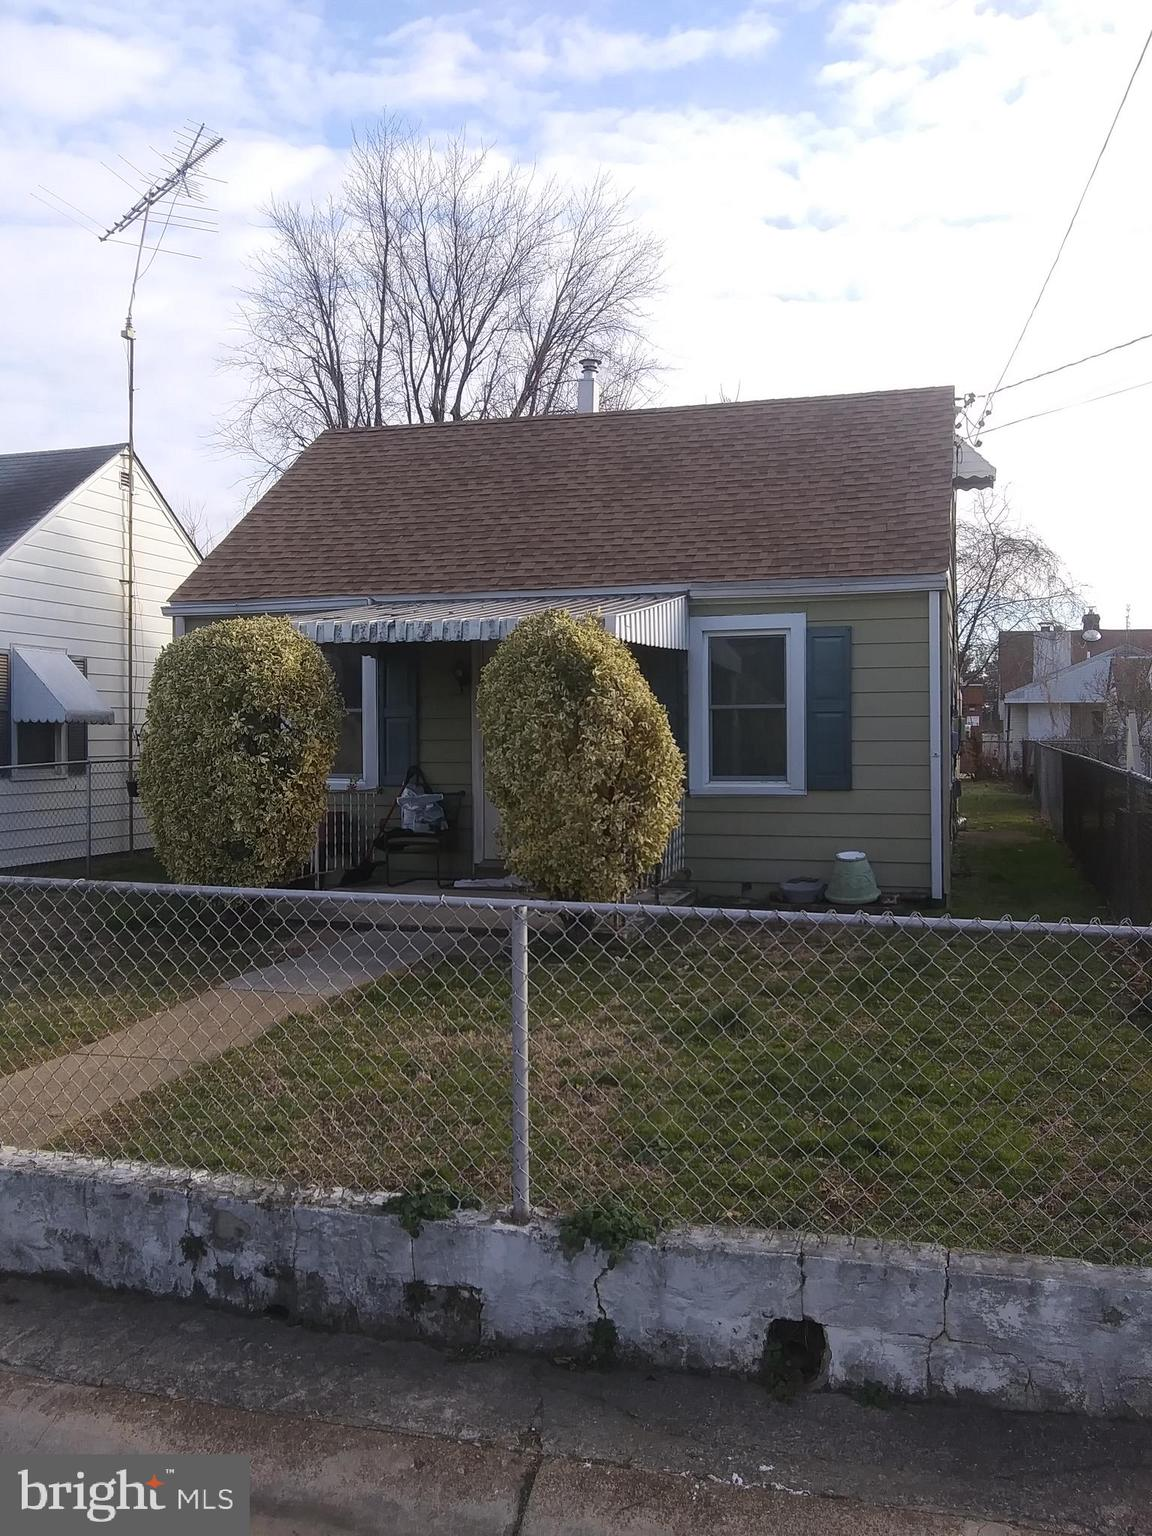 2 bed 1 bath bungalow.  Recent updates, New windows, HVAC, Hot water heater, roof and Plumbing.  Ele